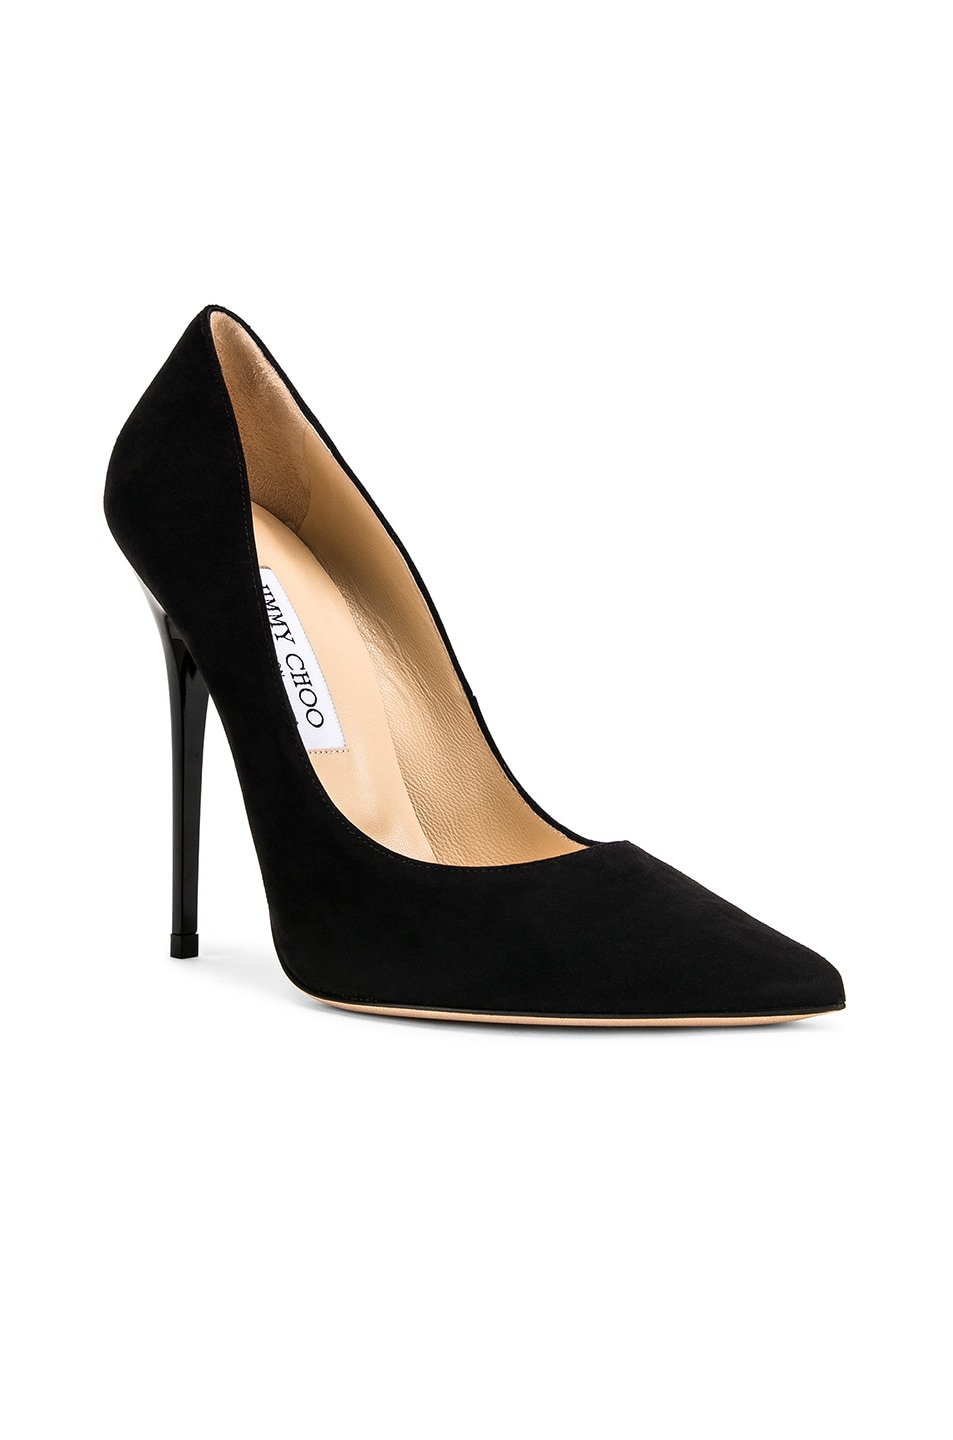 Image 2 of Jimmy Choo Anouk Suede Pumps in Black